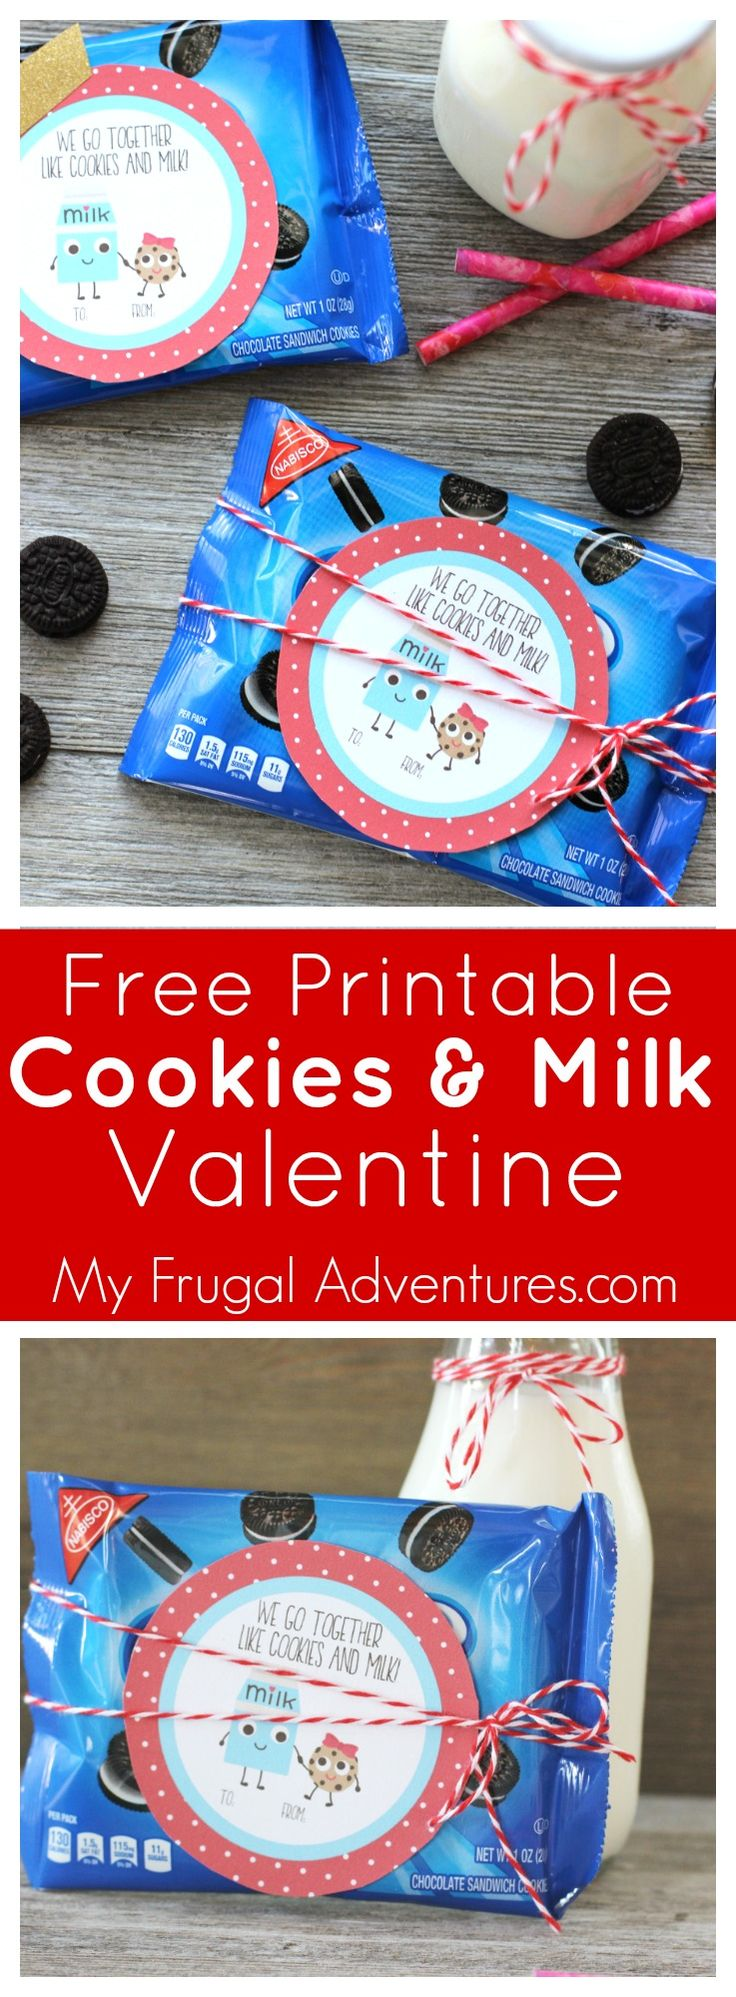 Adorable Free Printable Cookies and Milk Valentine- use this with your favorite cookie for Valentine's or add milk for class parties.